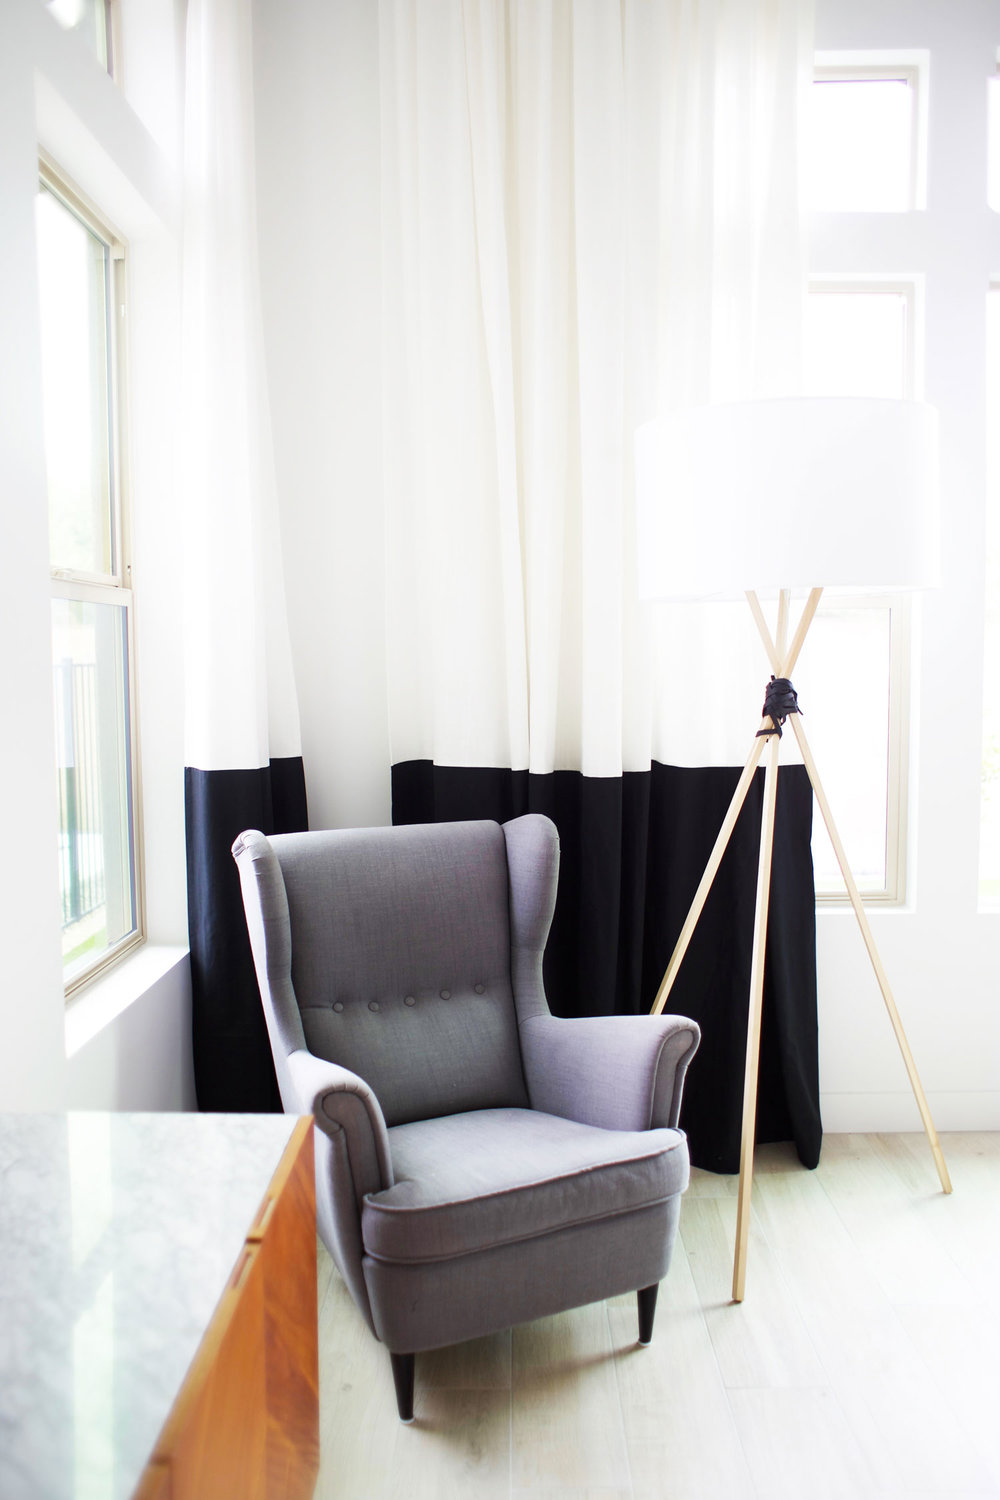 17 Images About Build Ikea Panel Curtain On Pinterest: Fresh Curtains You Can See Out But Not In